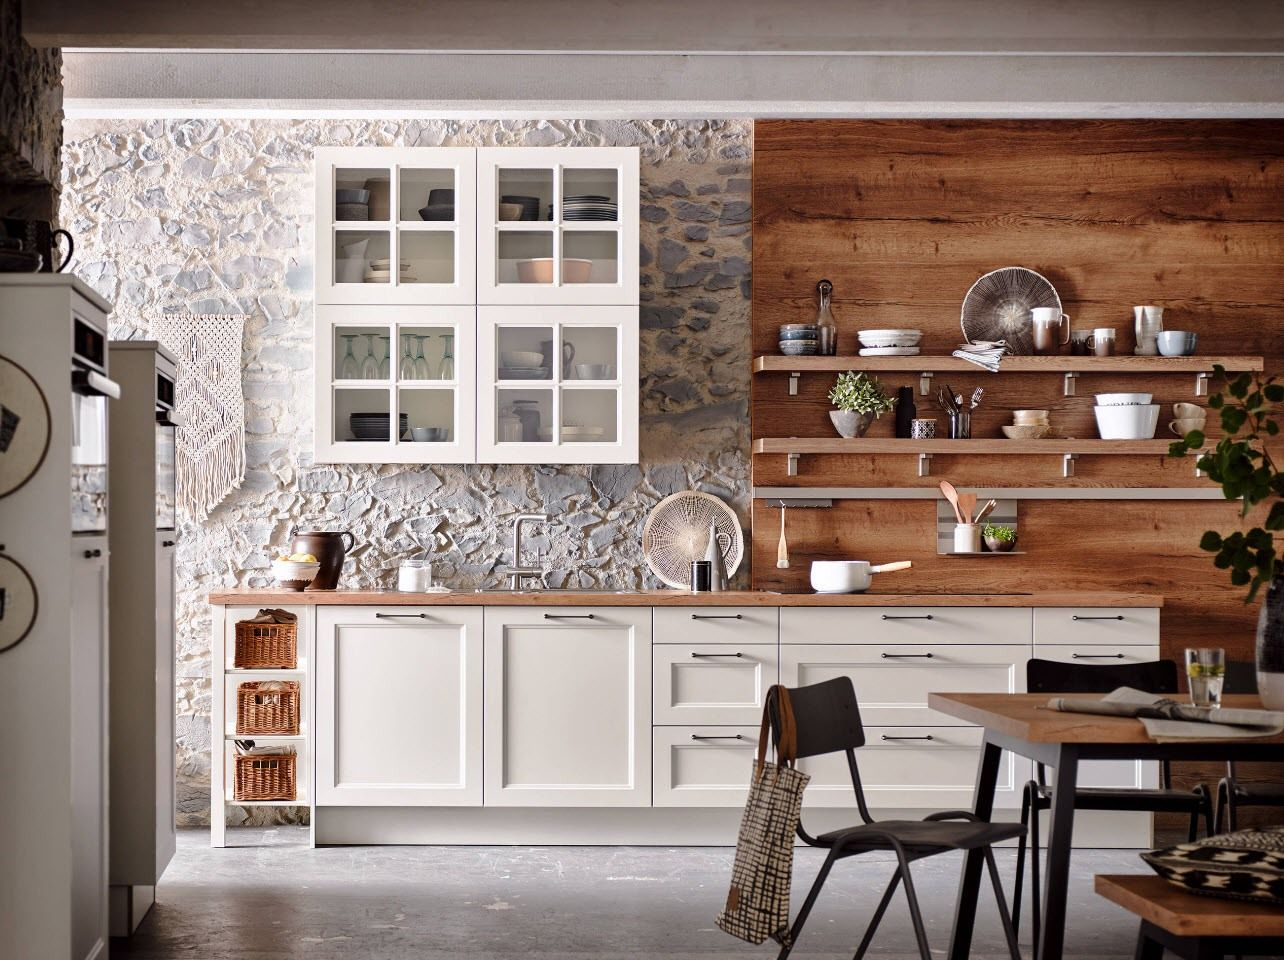 Gray kitchen design with unusual texture of the wall plaster